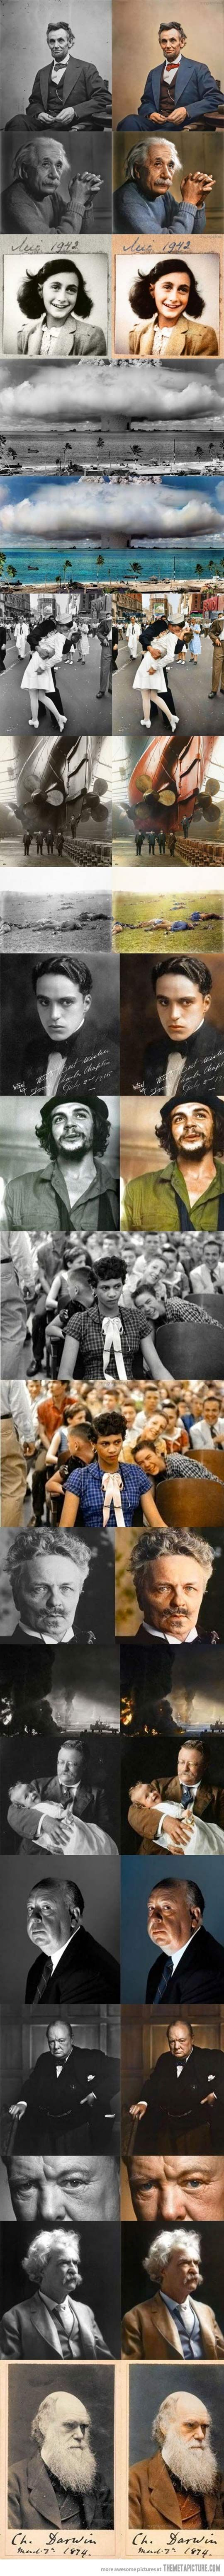 Adding Color To Iconic Photos. This really makes an impact.